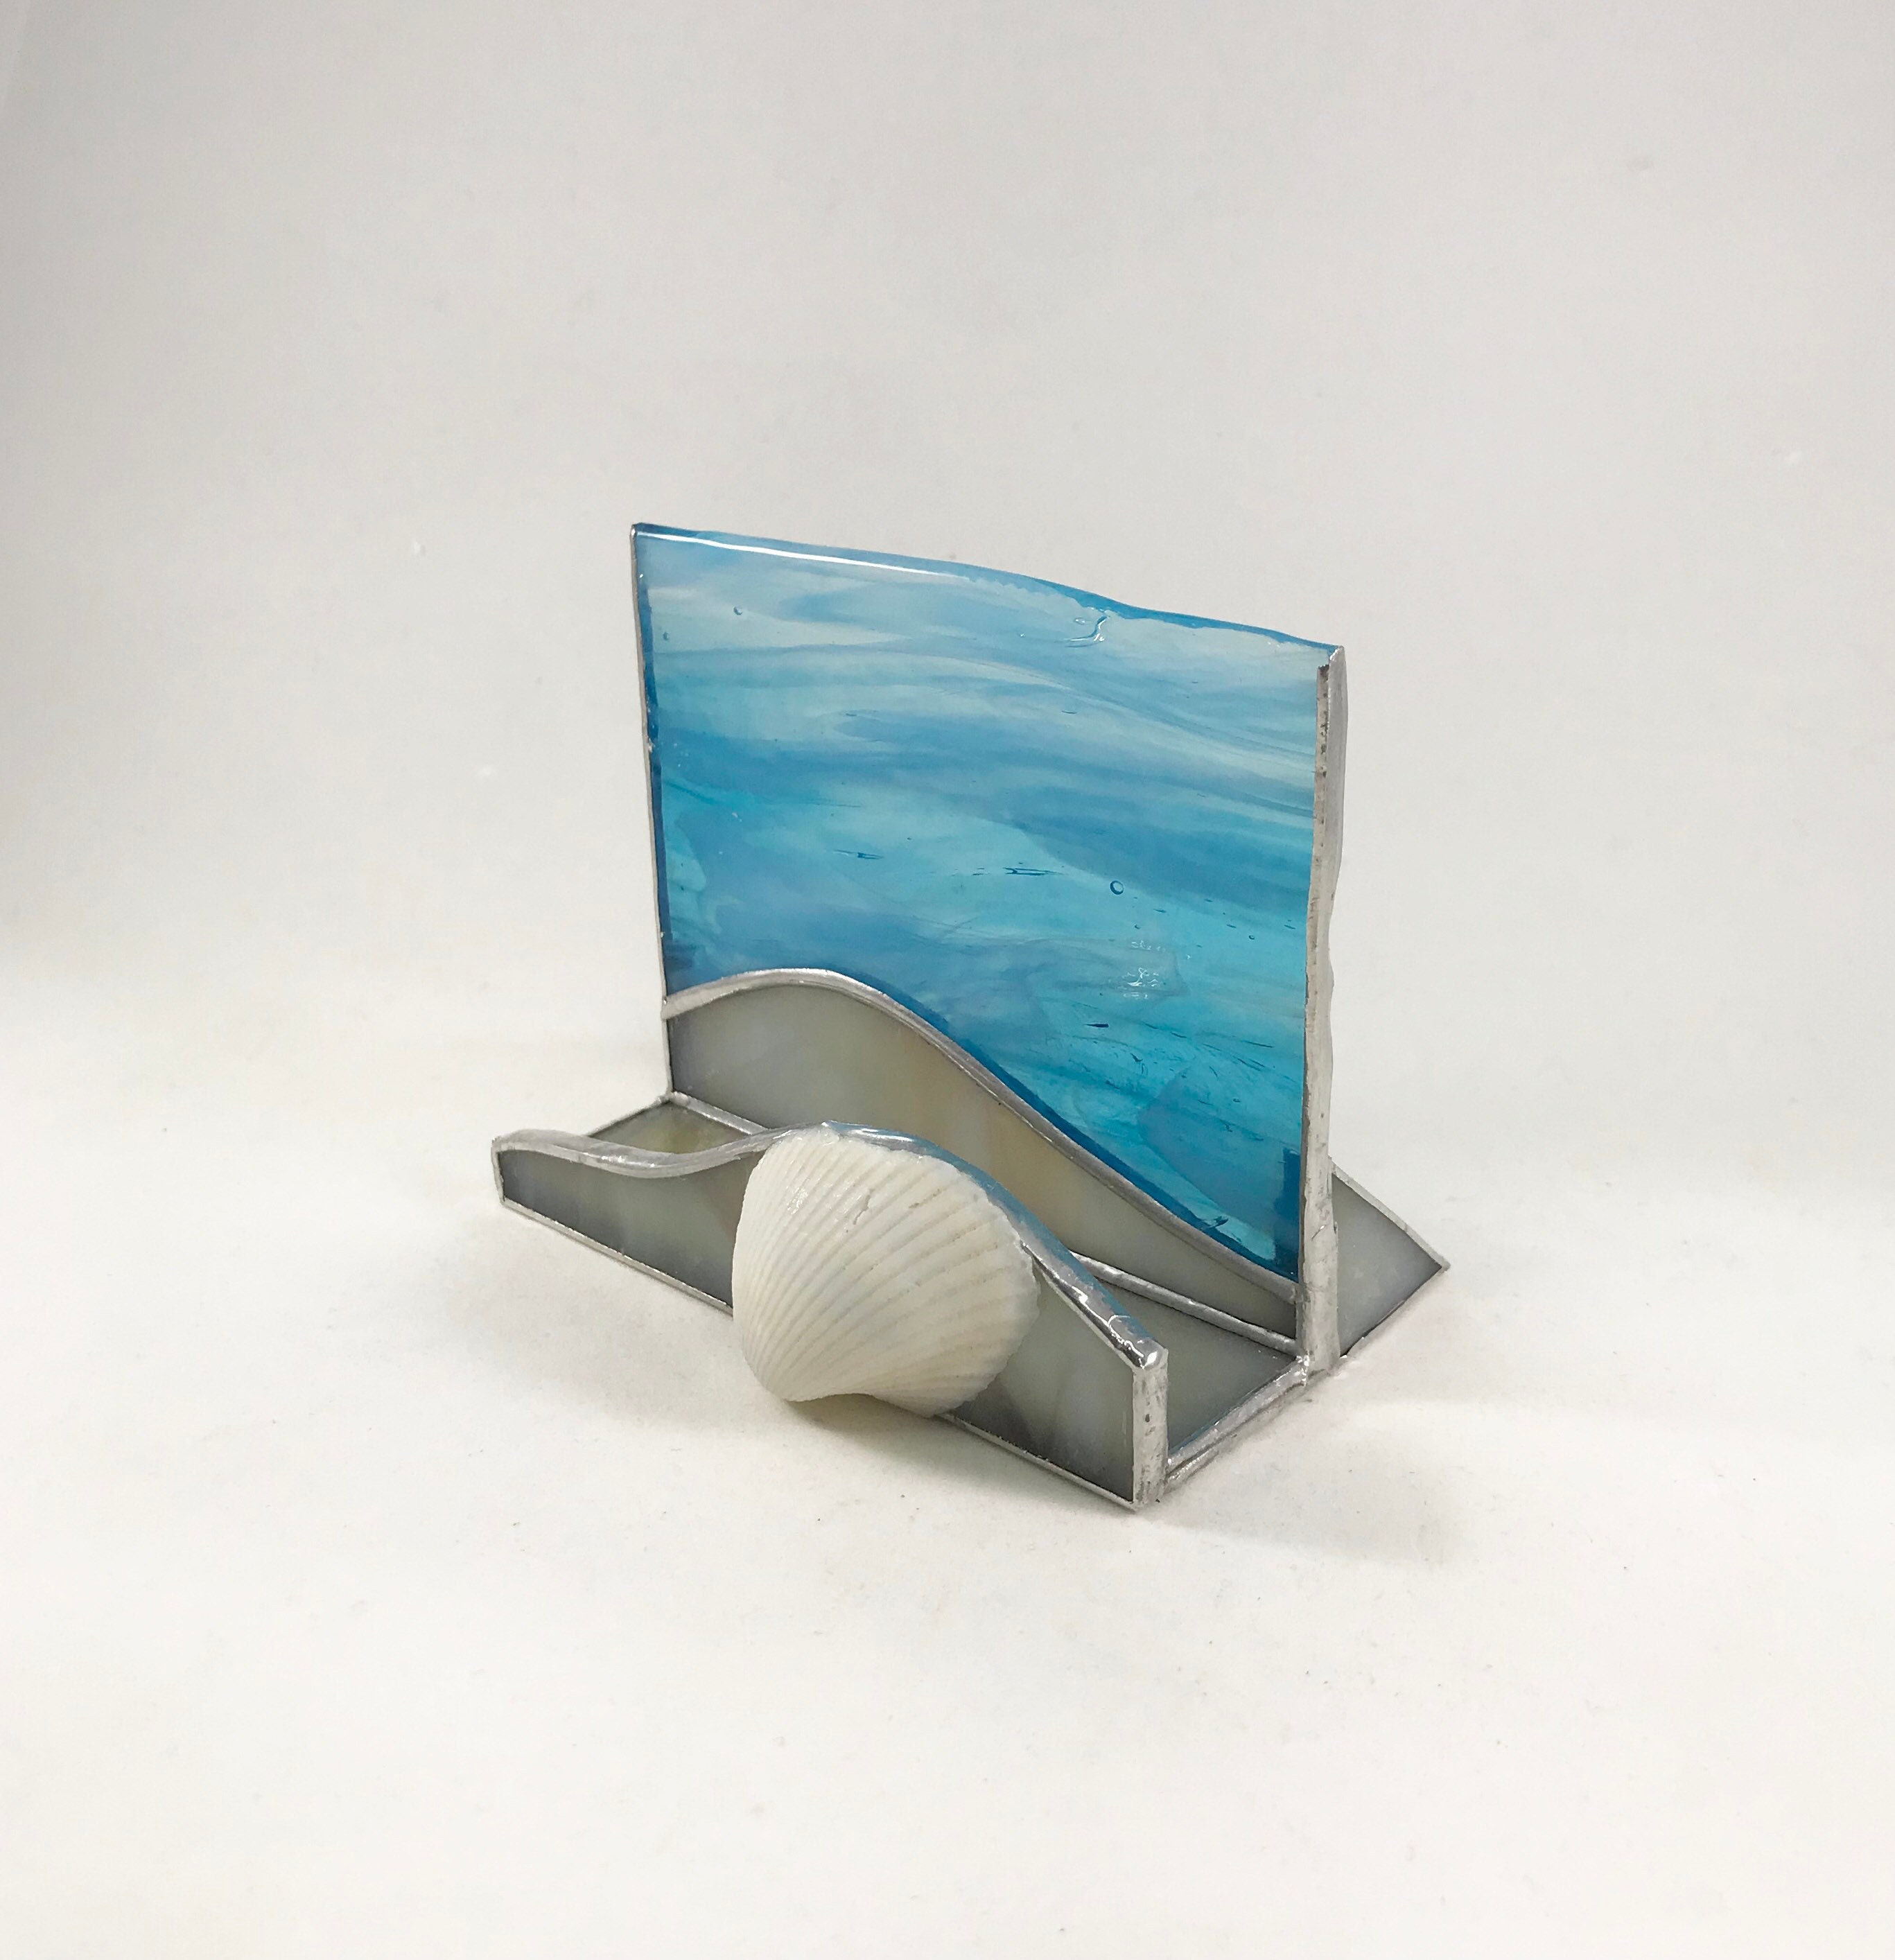 Stained glass phone stand business card holder seashell beach ocean stained glass phone stand business card holder seashell beach ocean blue iphone android galaxy tablets ipad kindle fire free shipping colourmoves